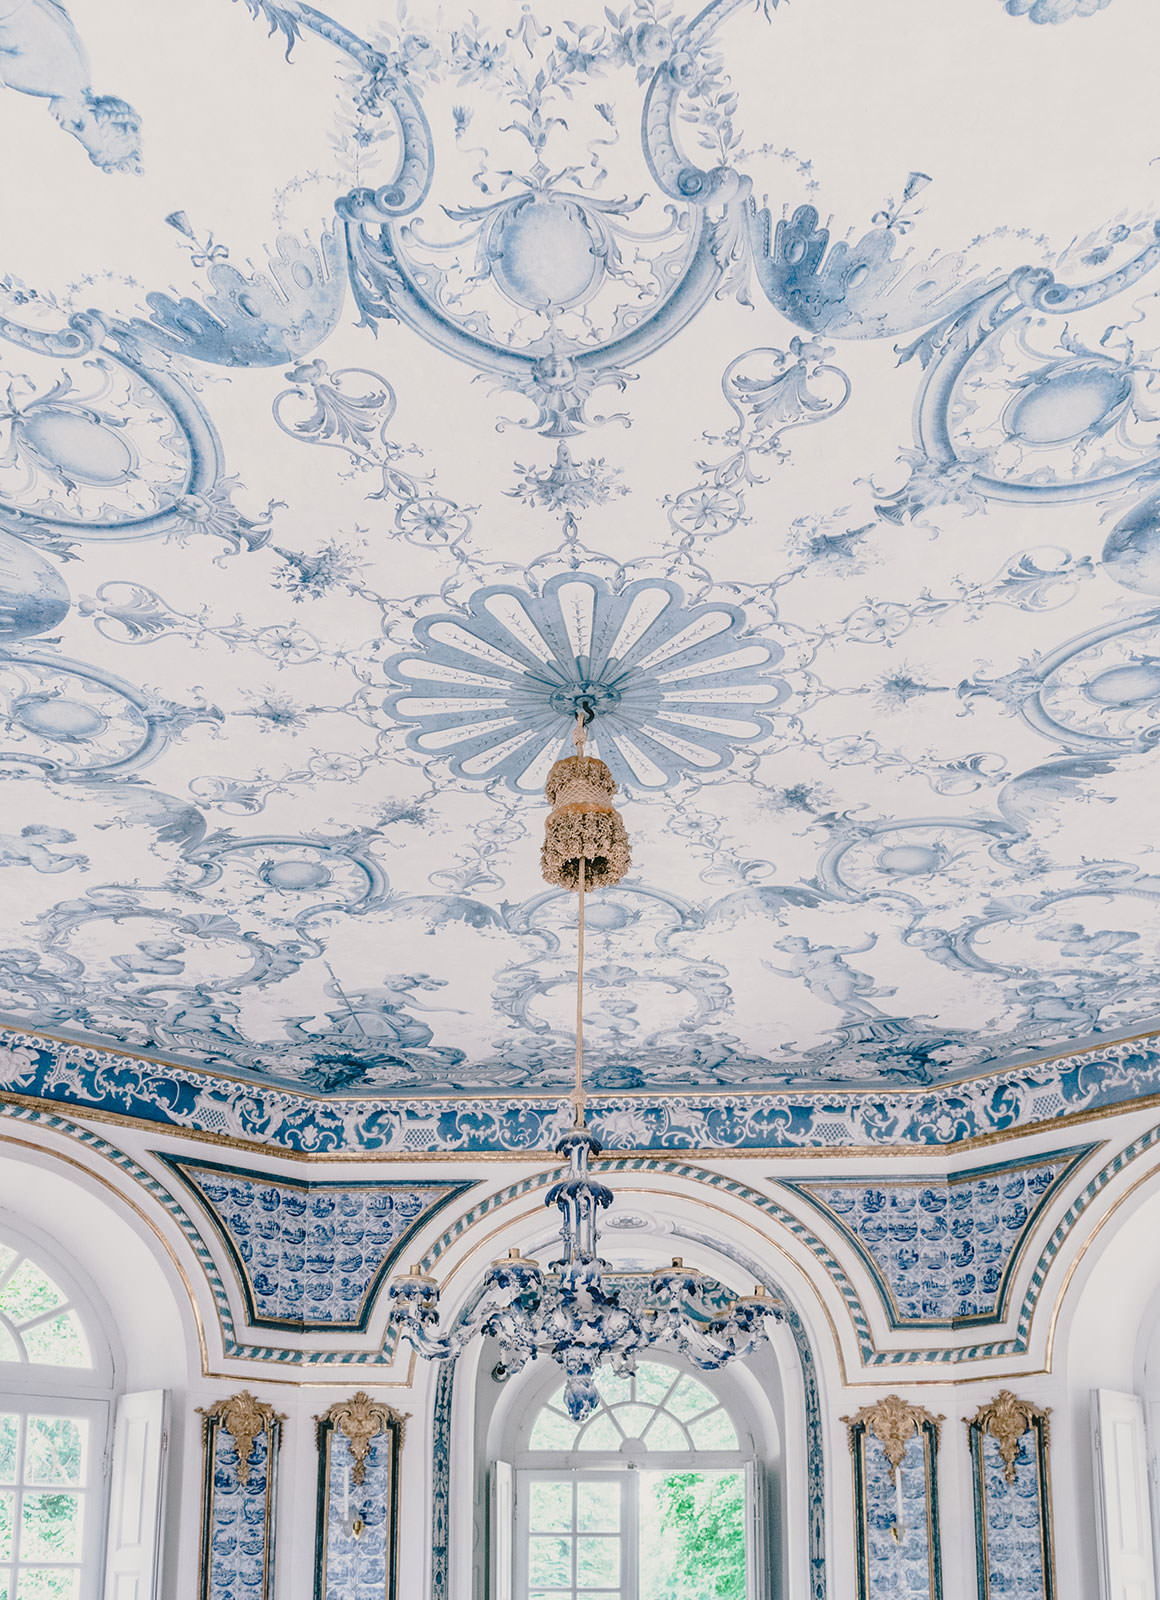 The Hidden Fairy Tale Palaces in Munich - Nymphenburg Palace Gardens